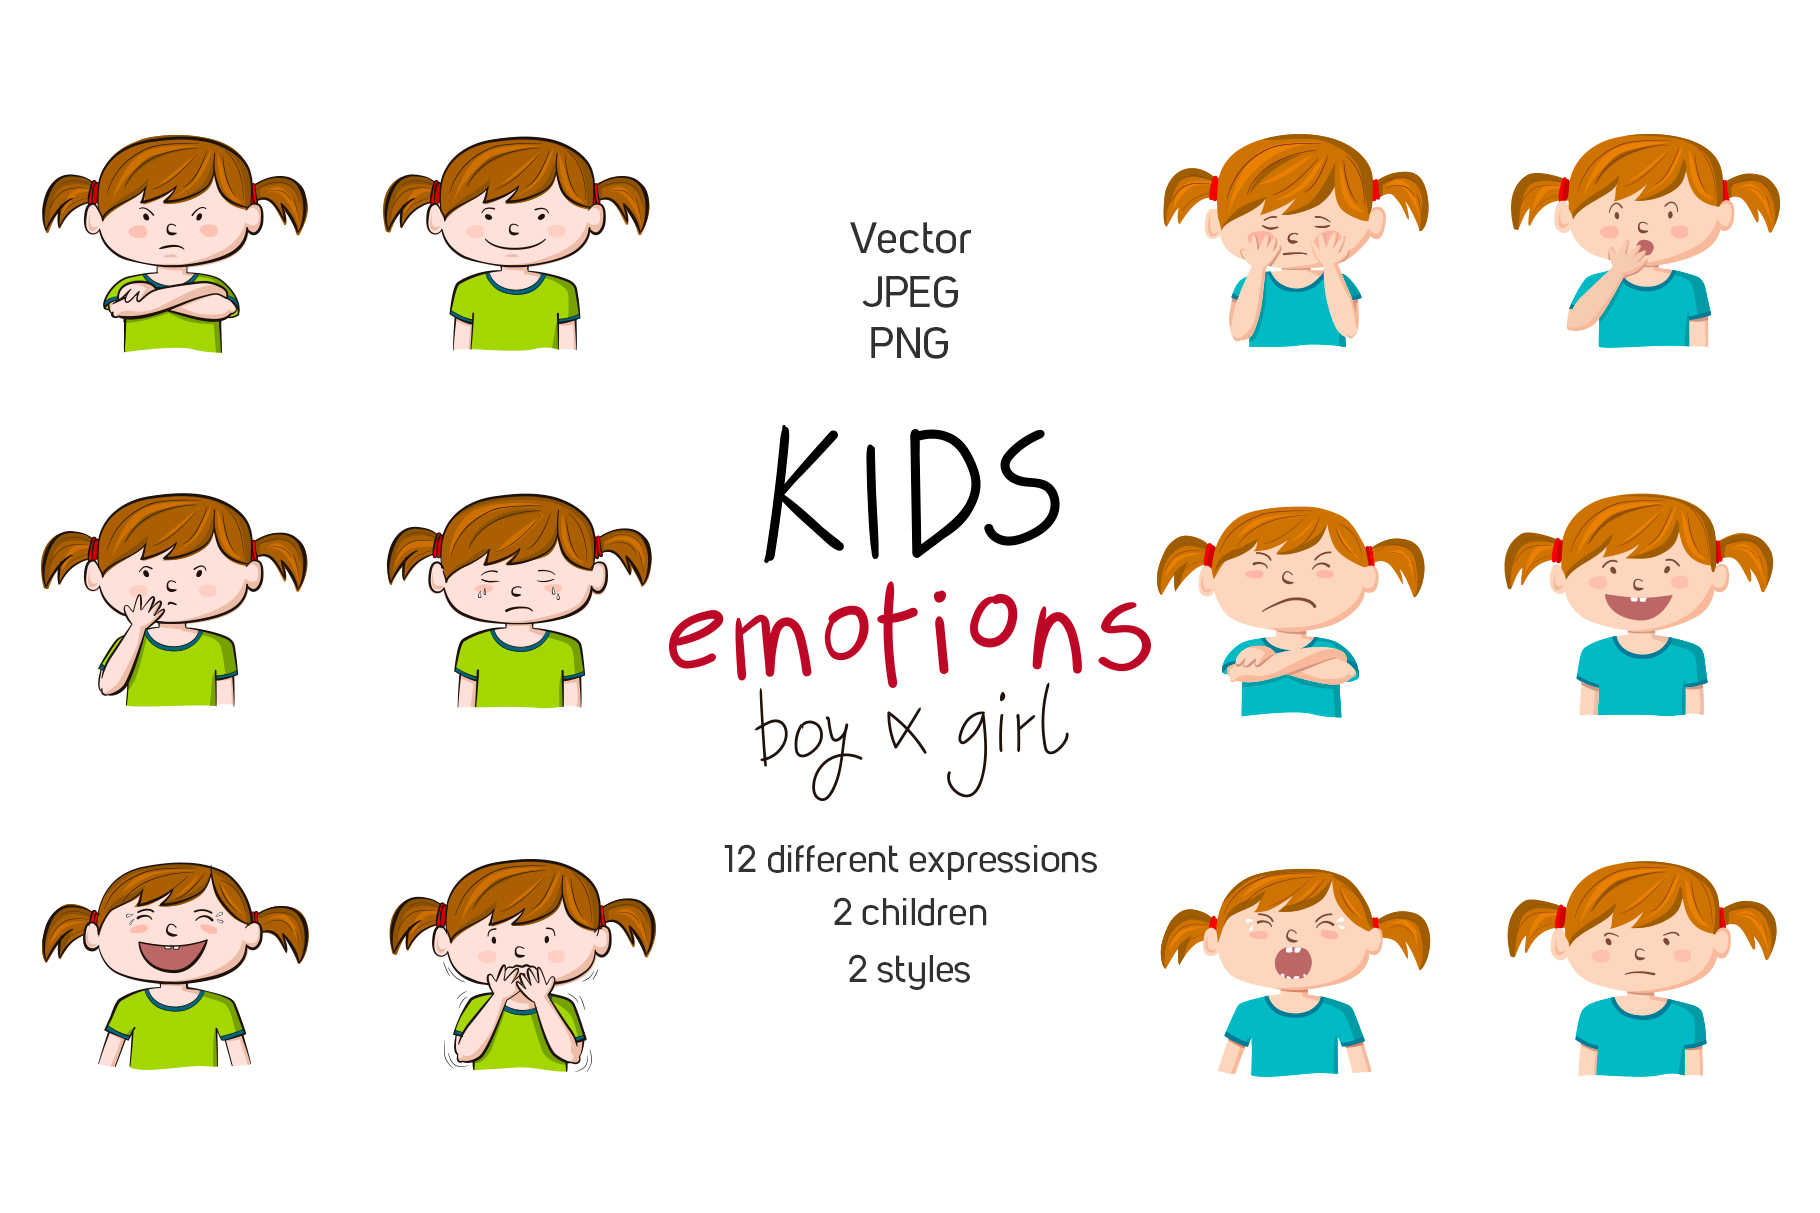 Kids emotions vector illustrations example image 2